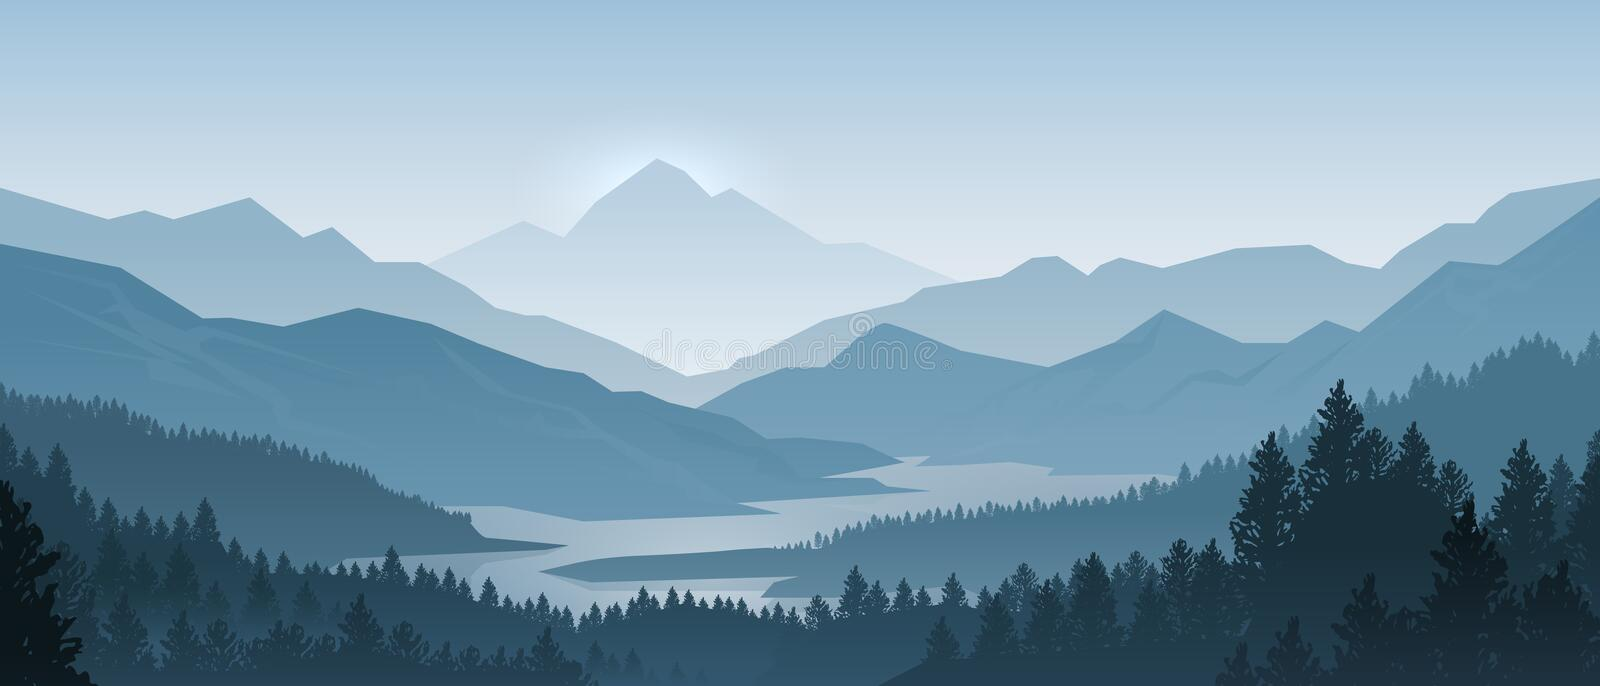 Realistic mountains landscape. Morning wood panorama, pine trees and mountains silhouettes. Vector forest background royalty free illustration